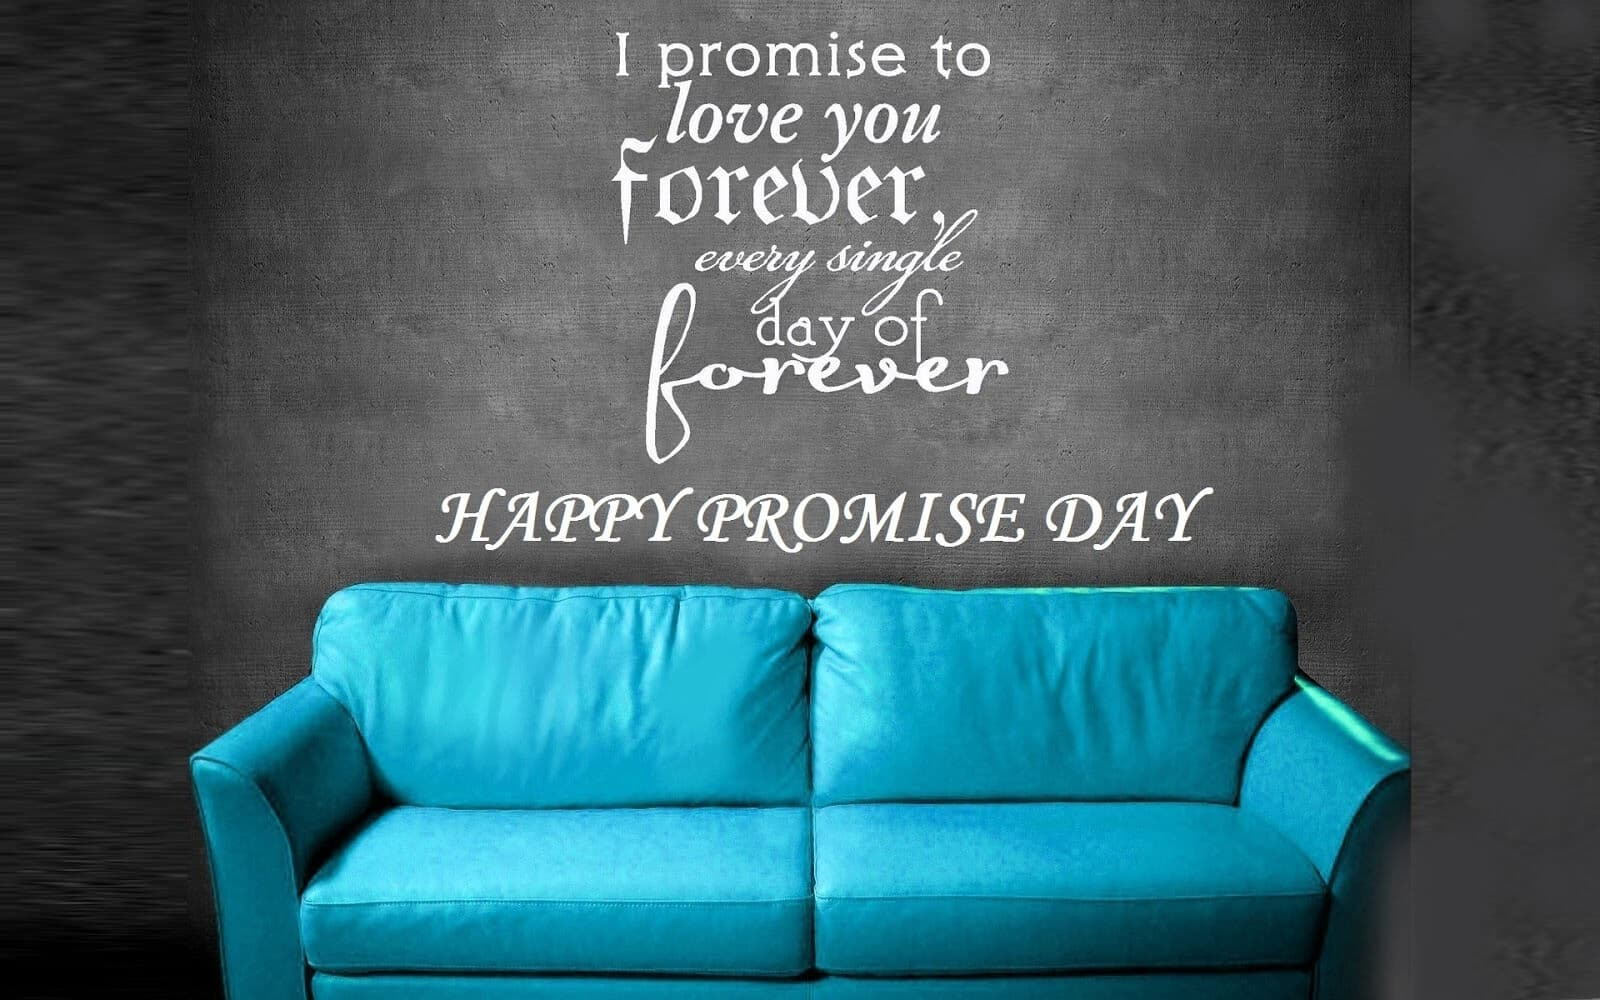 Happy Promise Day fabulous greetings card for lovely darling